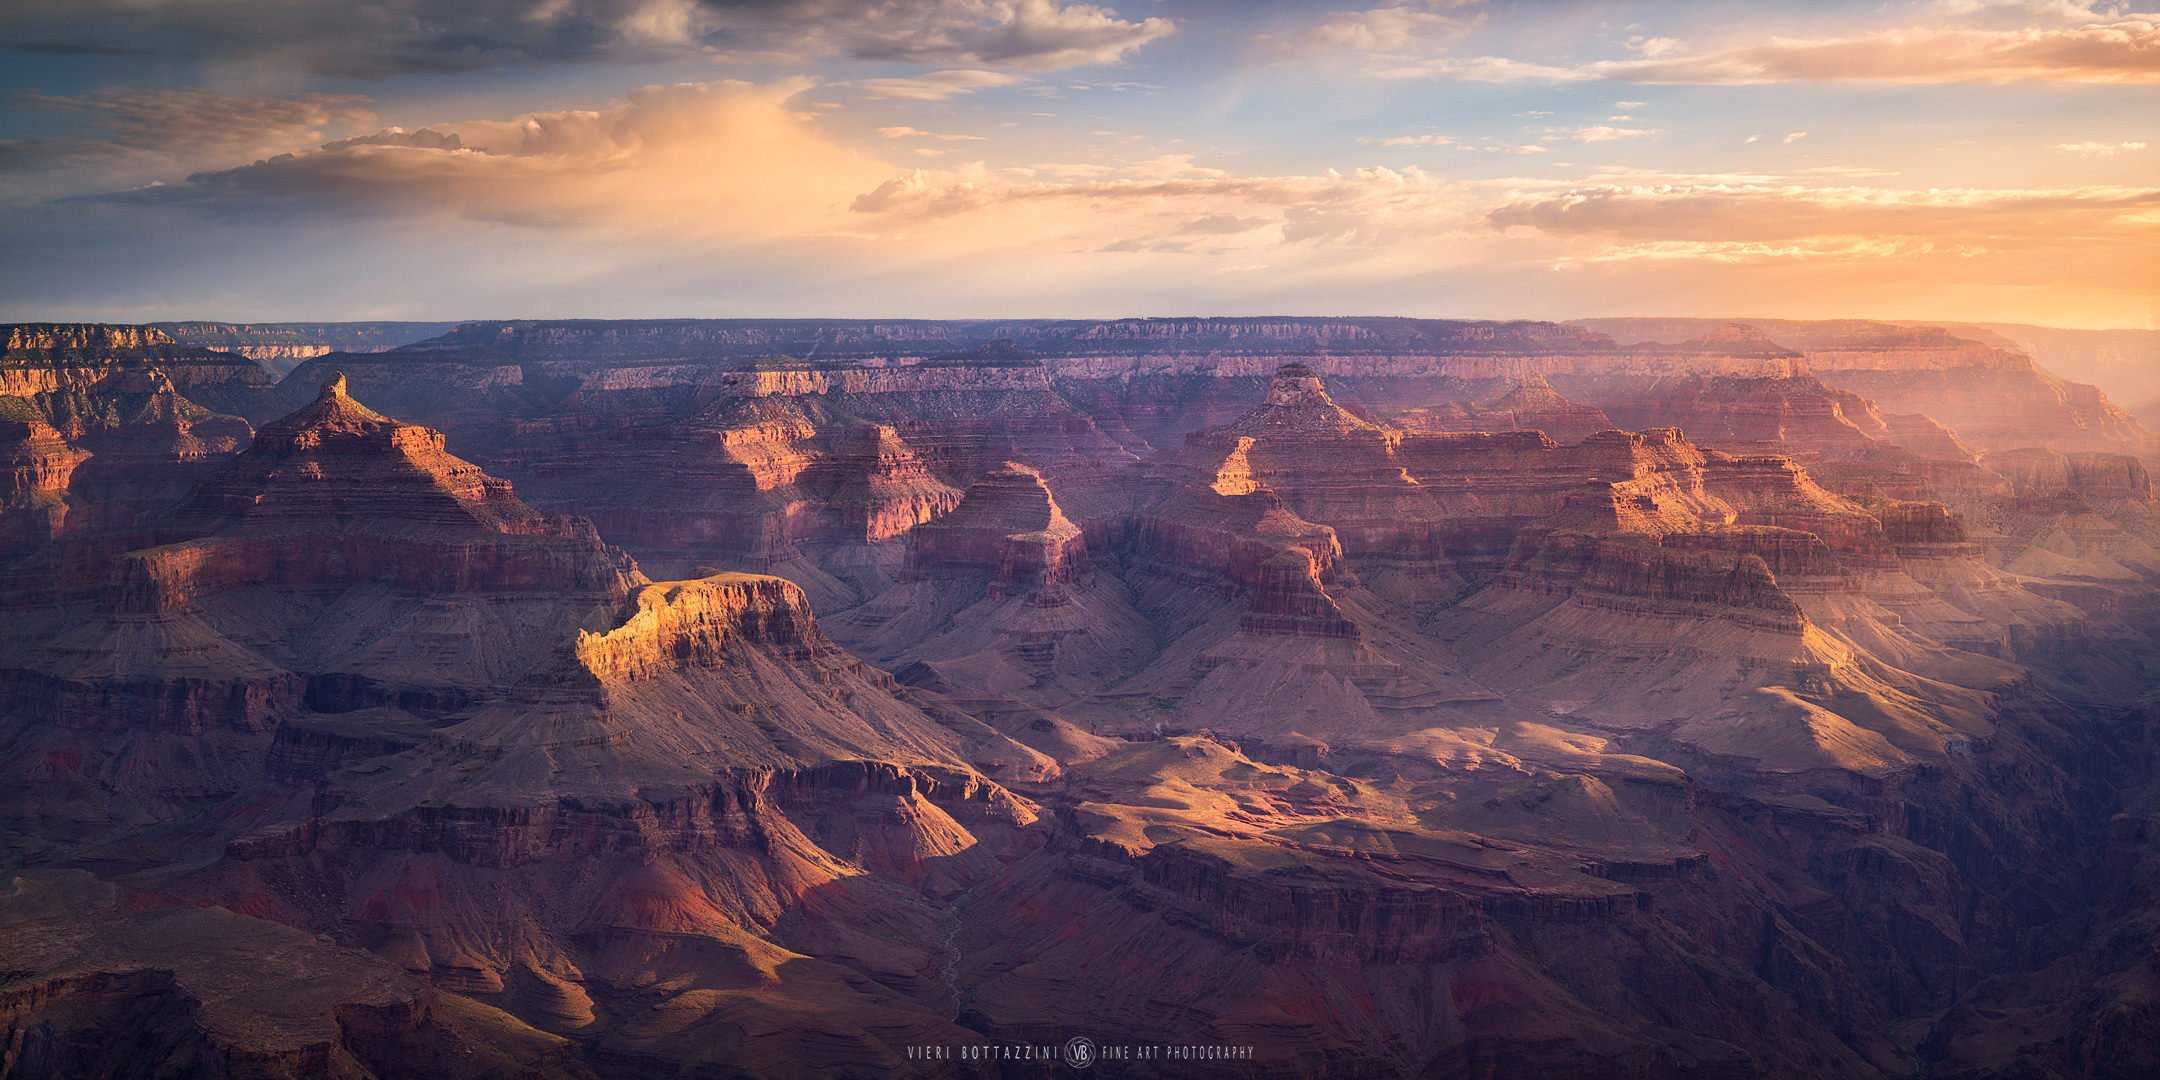 Grand Canyon (USA, 2010)